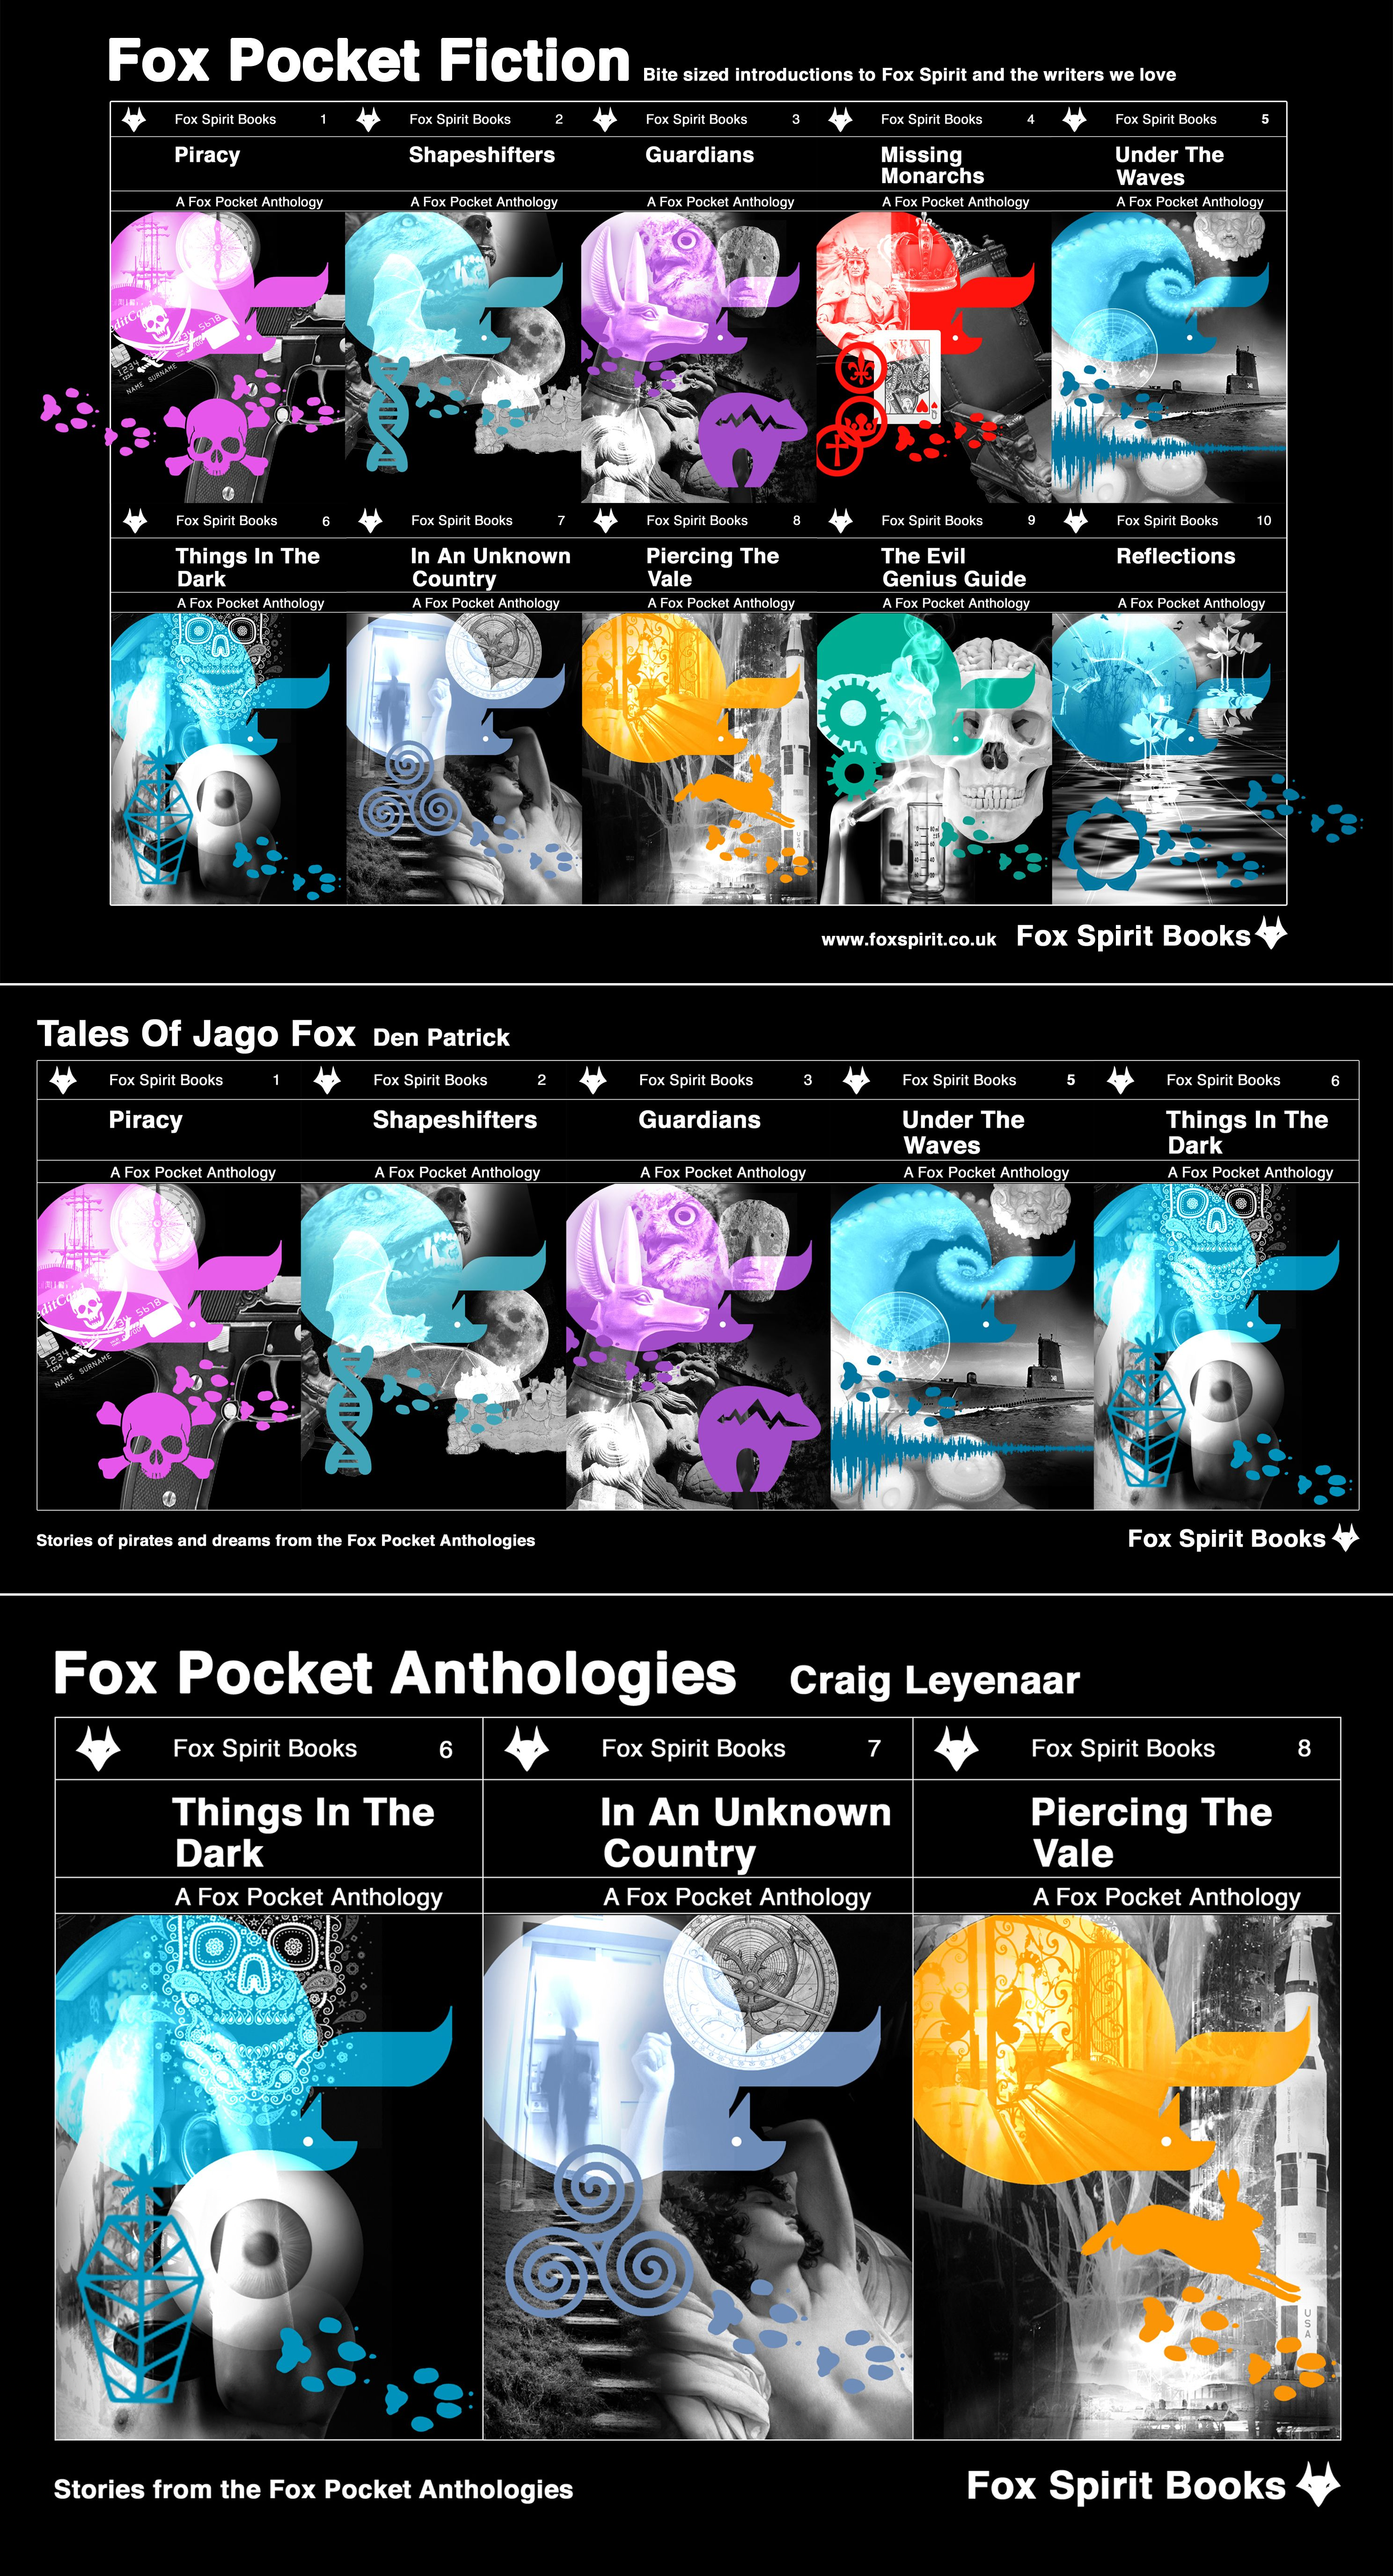 Book cover designs for the Fox Pocket range of science fiction & fantasy anthologies from Fox Spirit. Den Patrick & Craig Leyenaar story arc sets.